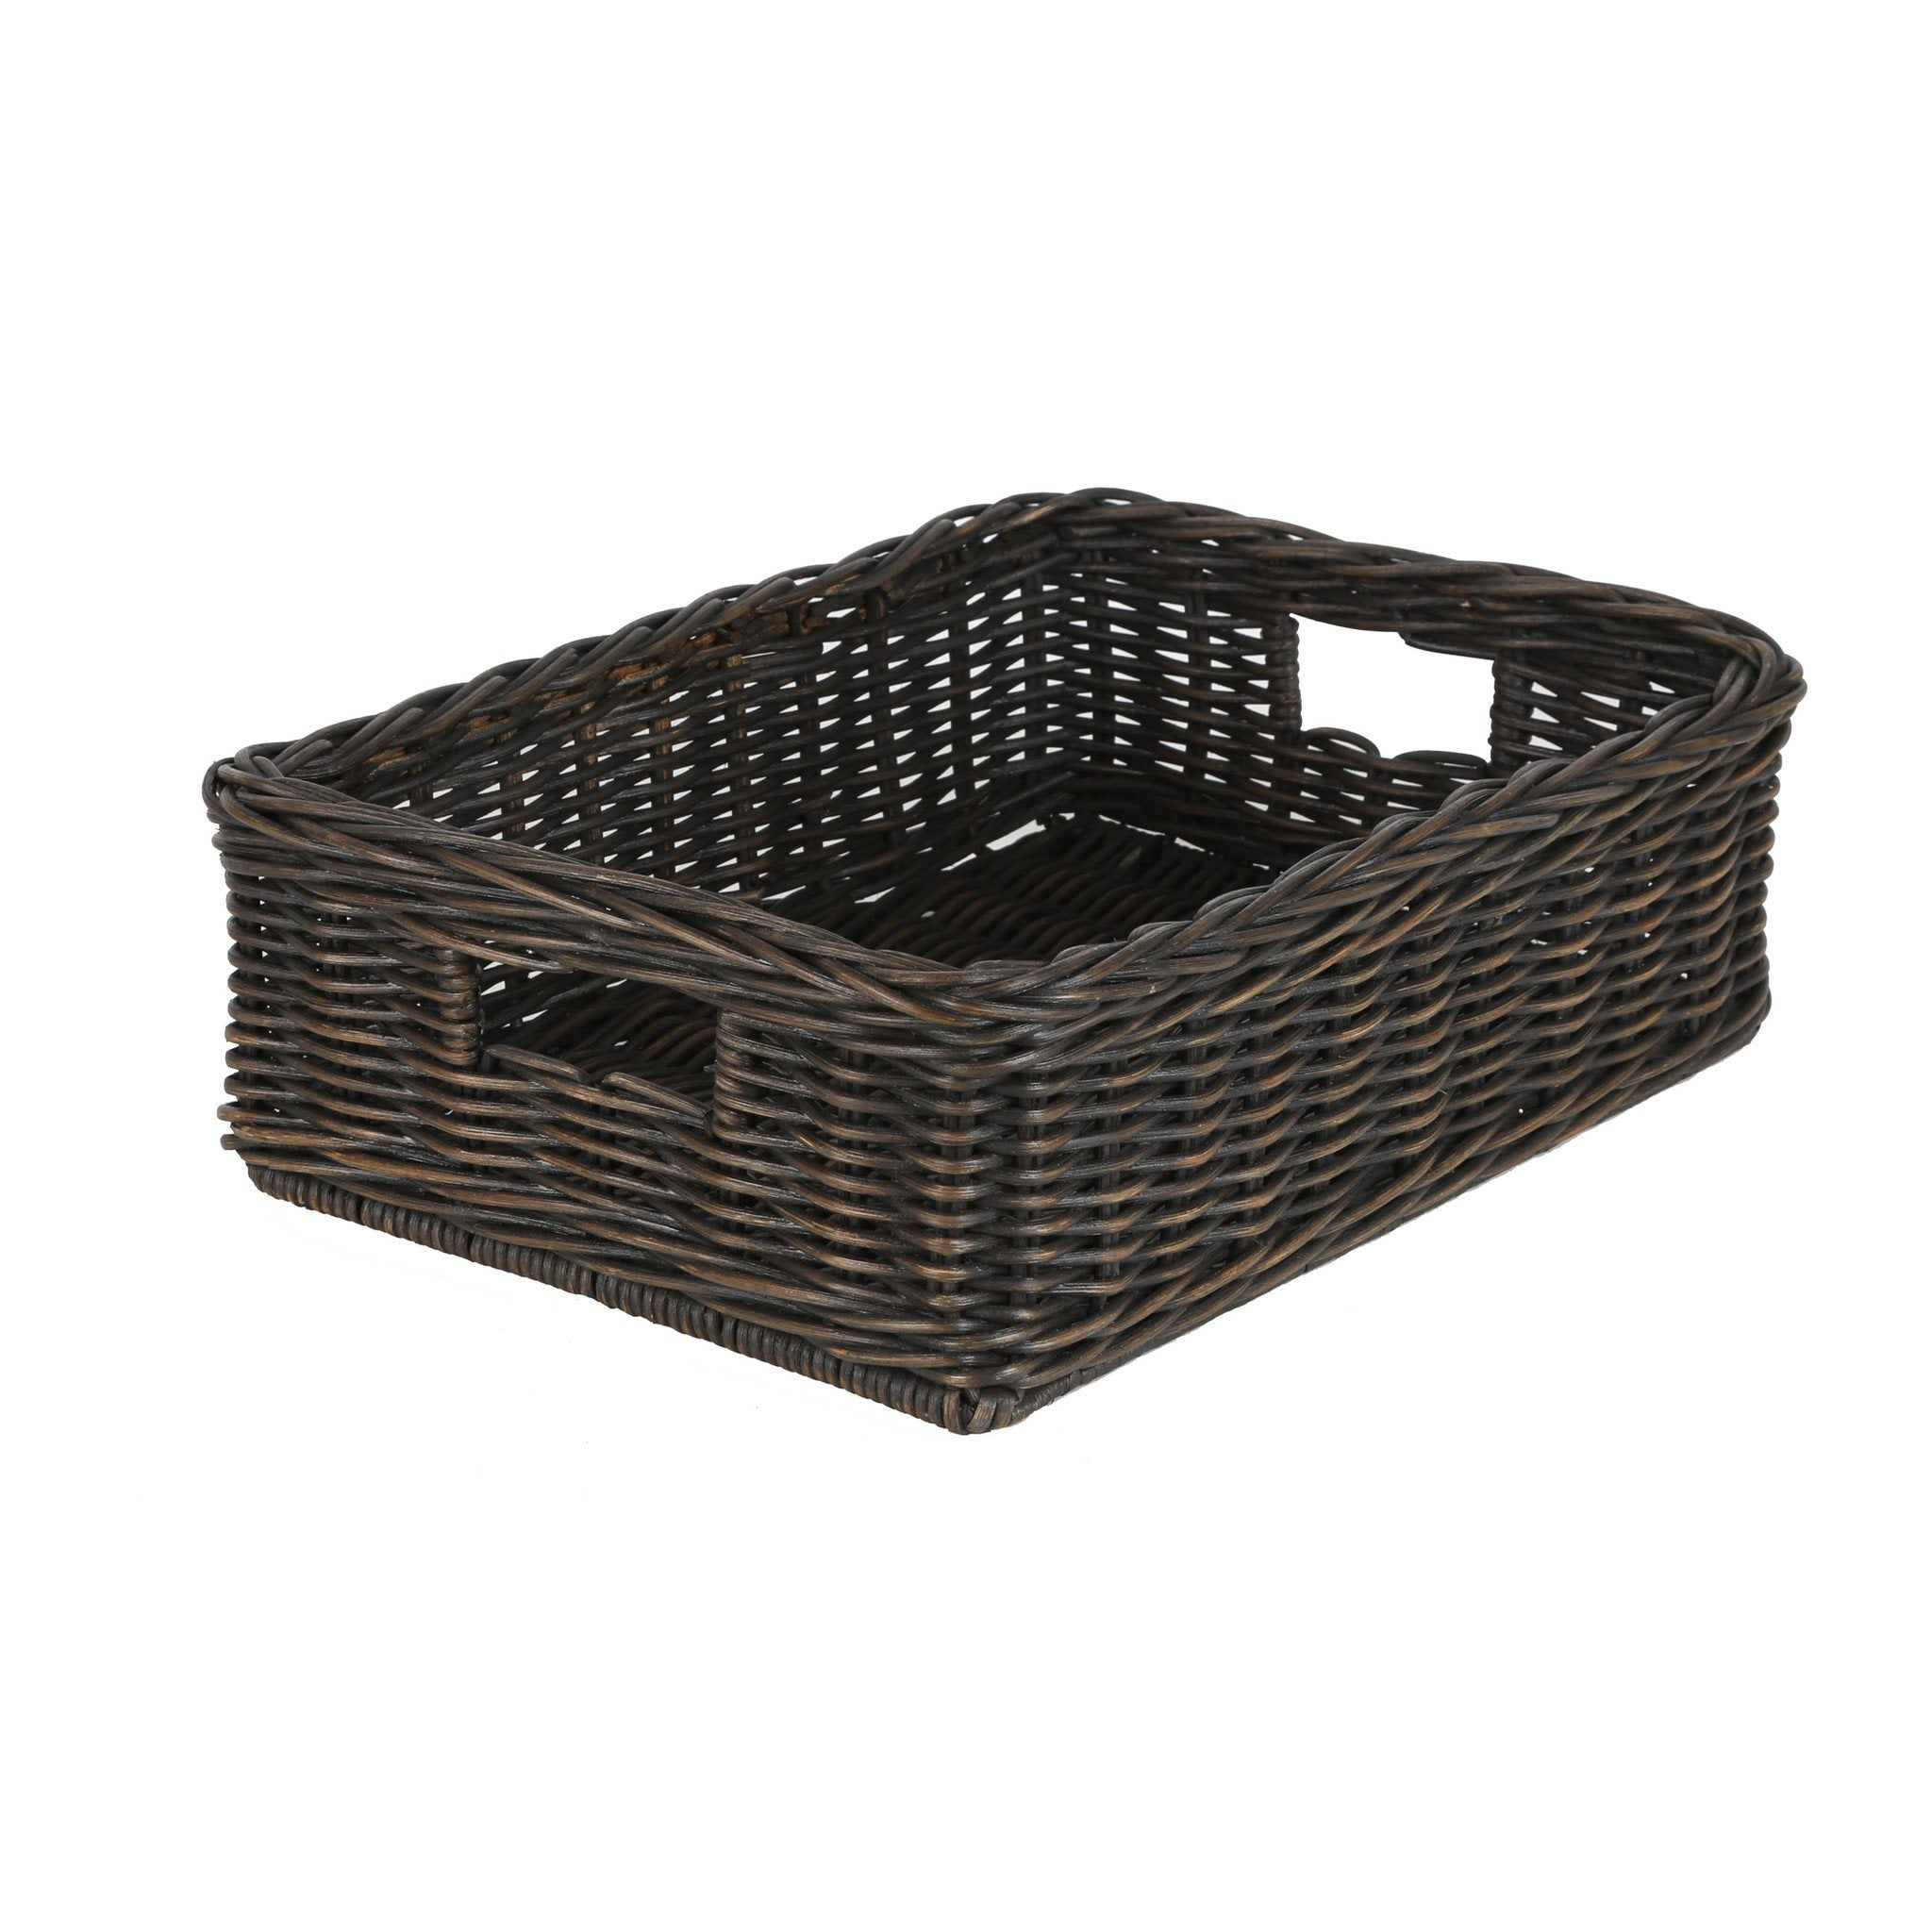 Home underbed storage baskets wicker underbed storage basket -  The Basket Lady Basic Wicker Storage Basket